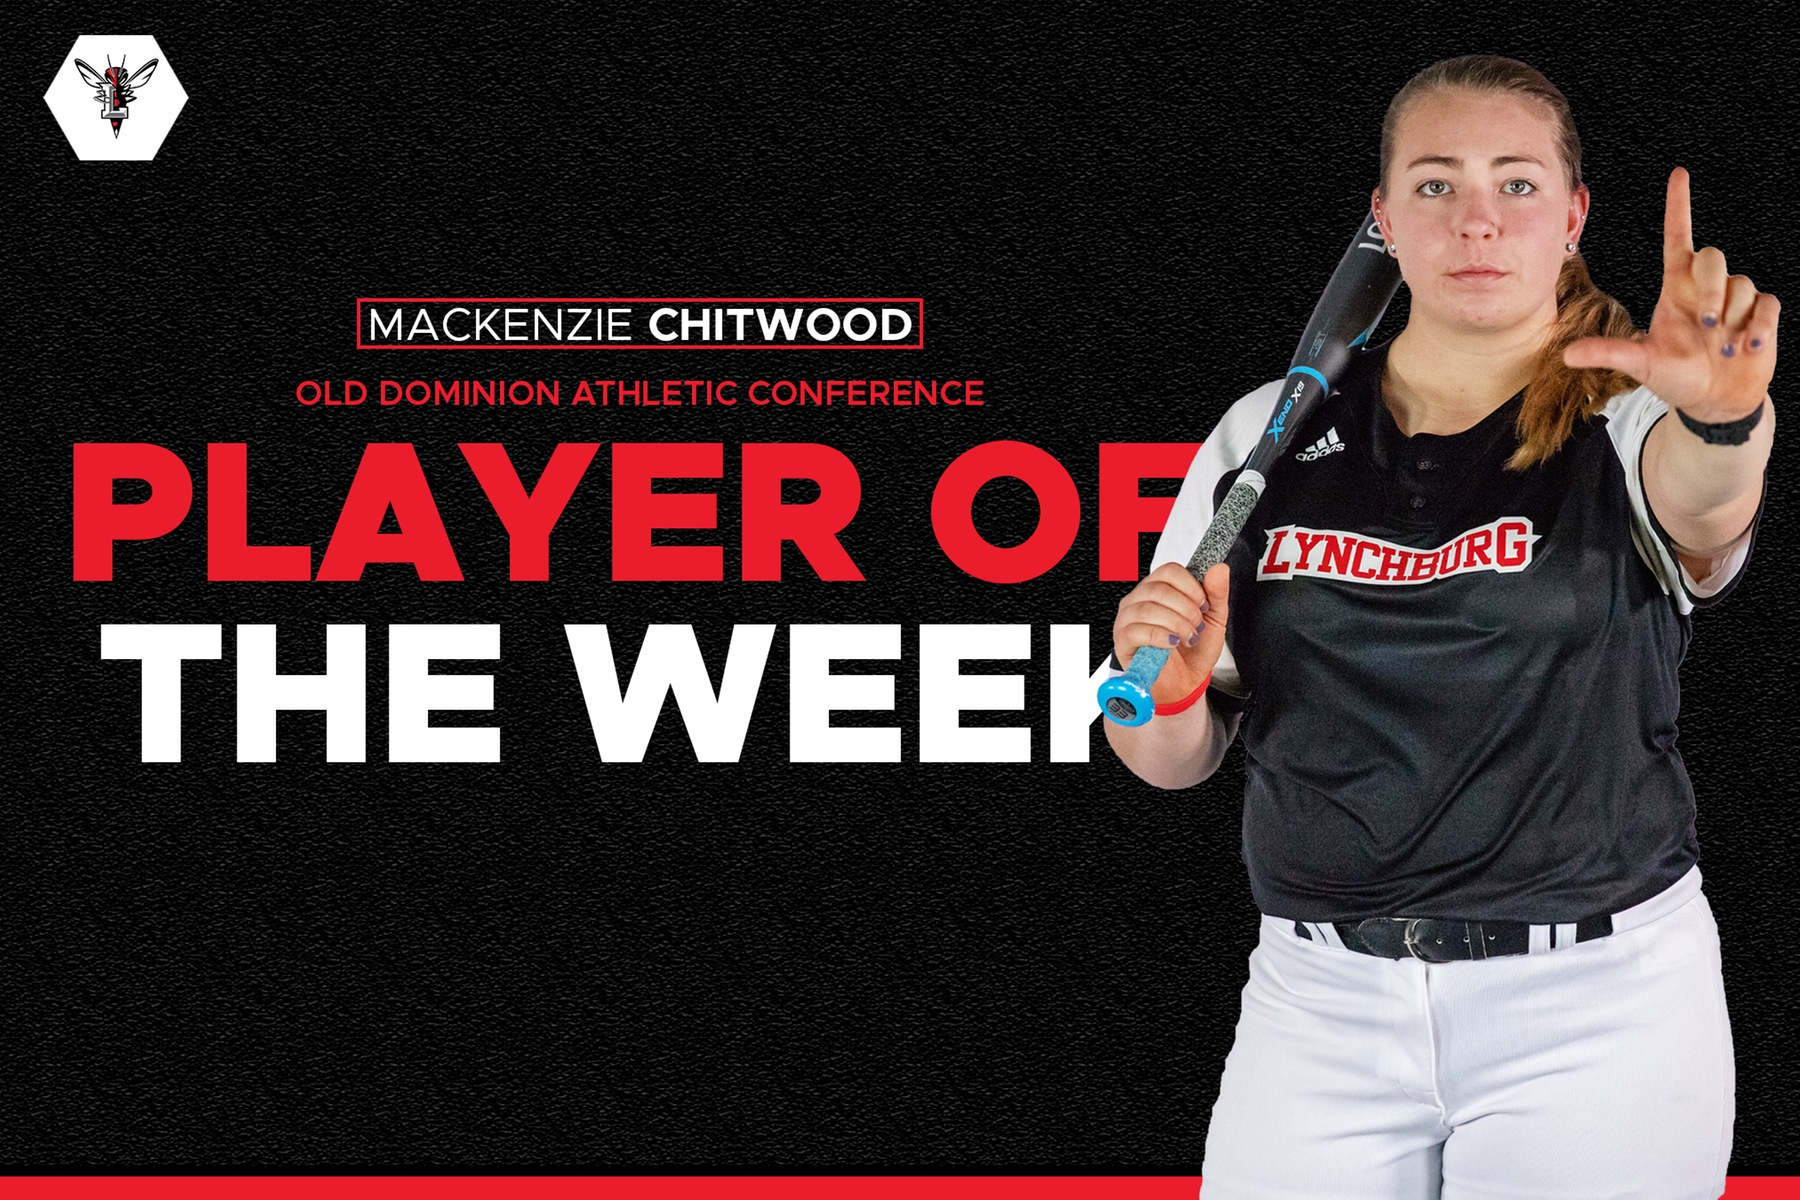 Mackenzie Chitwood posing with bat on her shoulder on black player of the week background